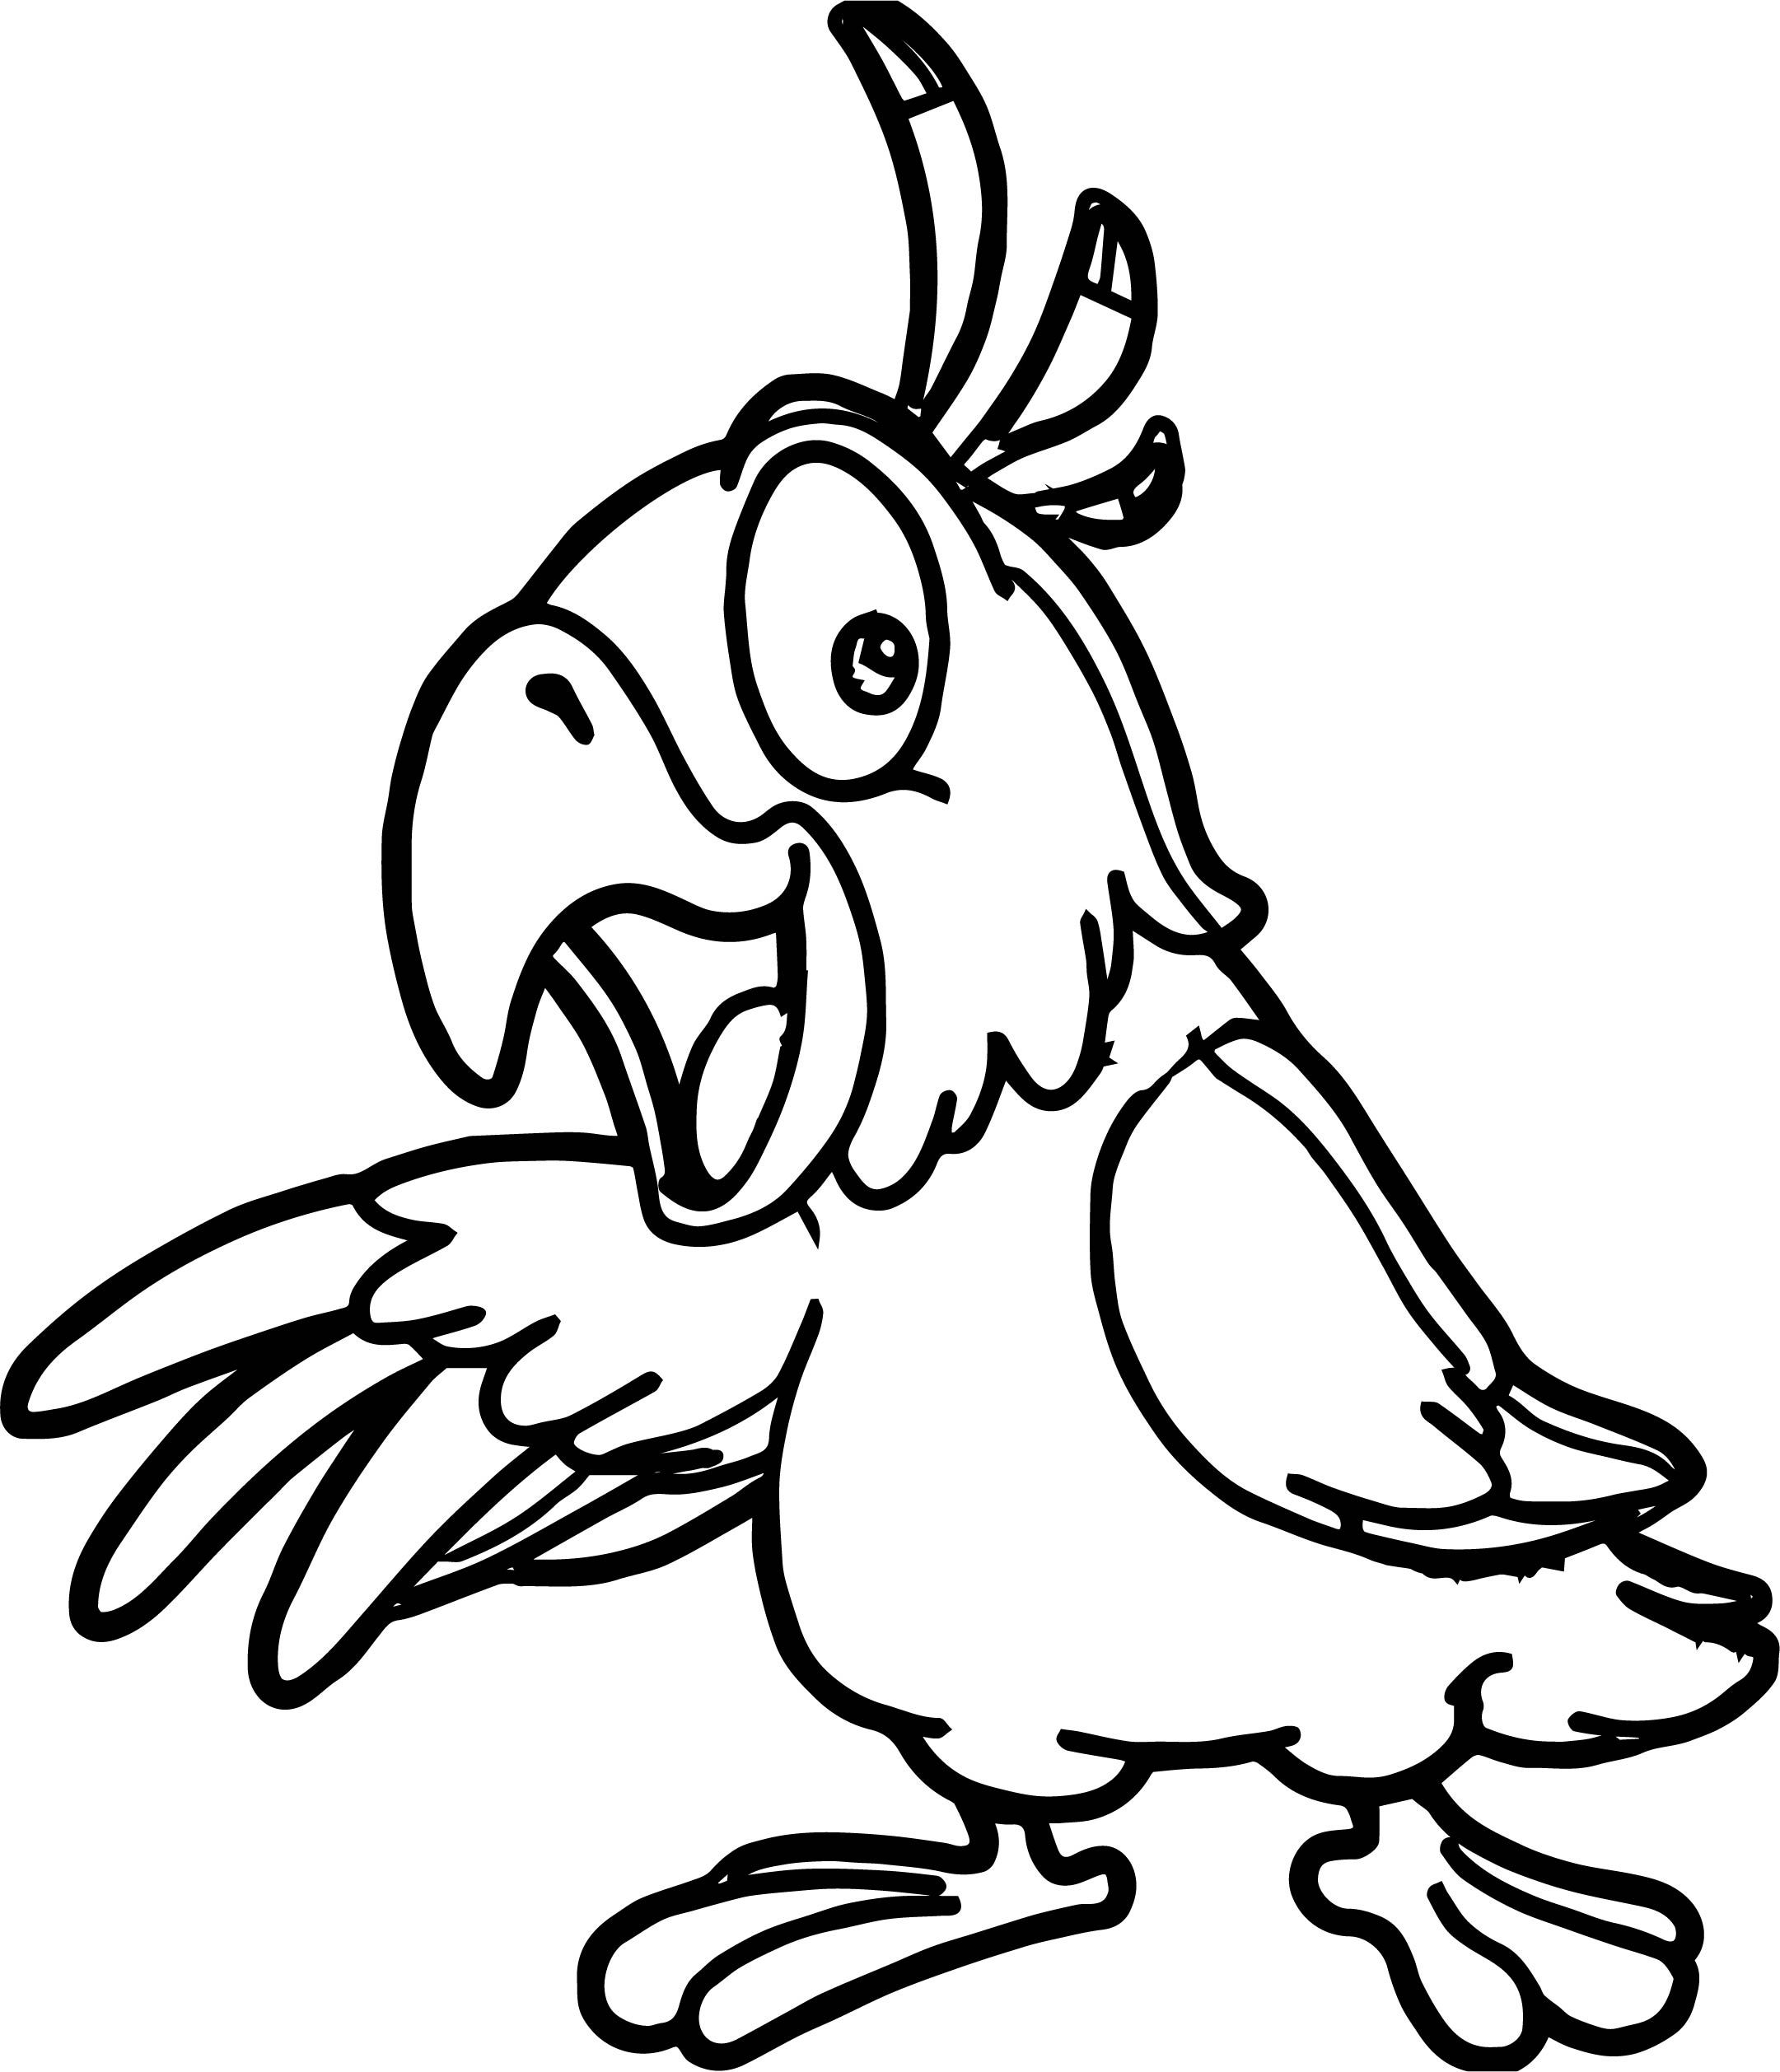 Awesome Parrot Bird Coloring Pages Bird Coloring Pages Animal Coloring Pages Pirate Coloring Pages